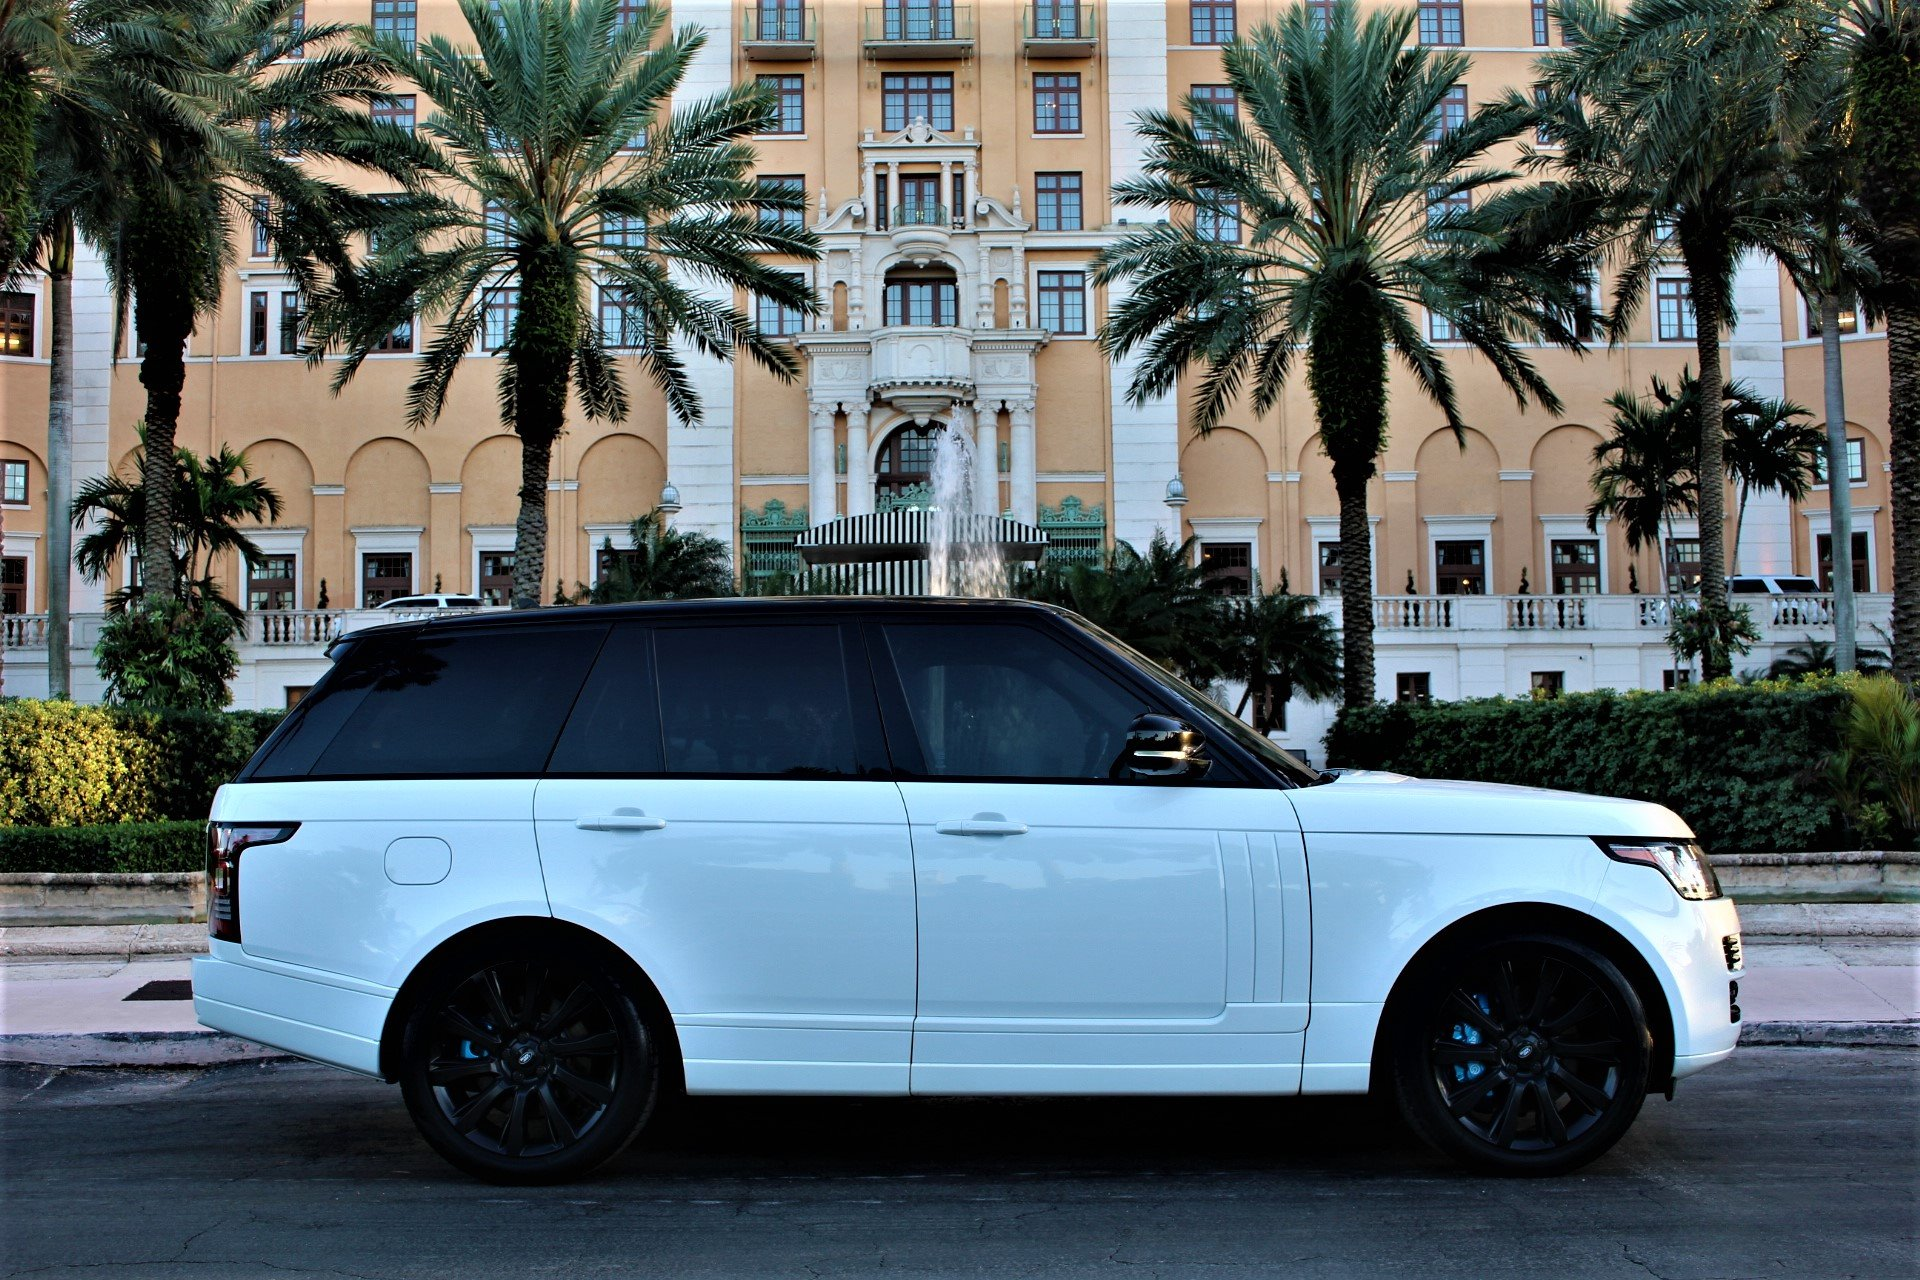 Used 2016 Land Rover Range Rover Supercharged for sale $53,850 at The Gables Sports Cars in Miami FL 33146 3